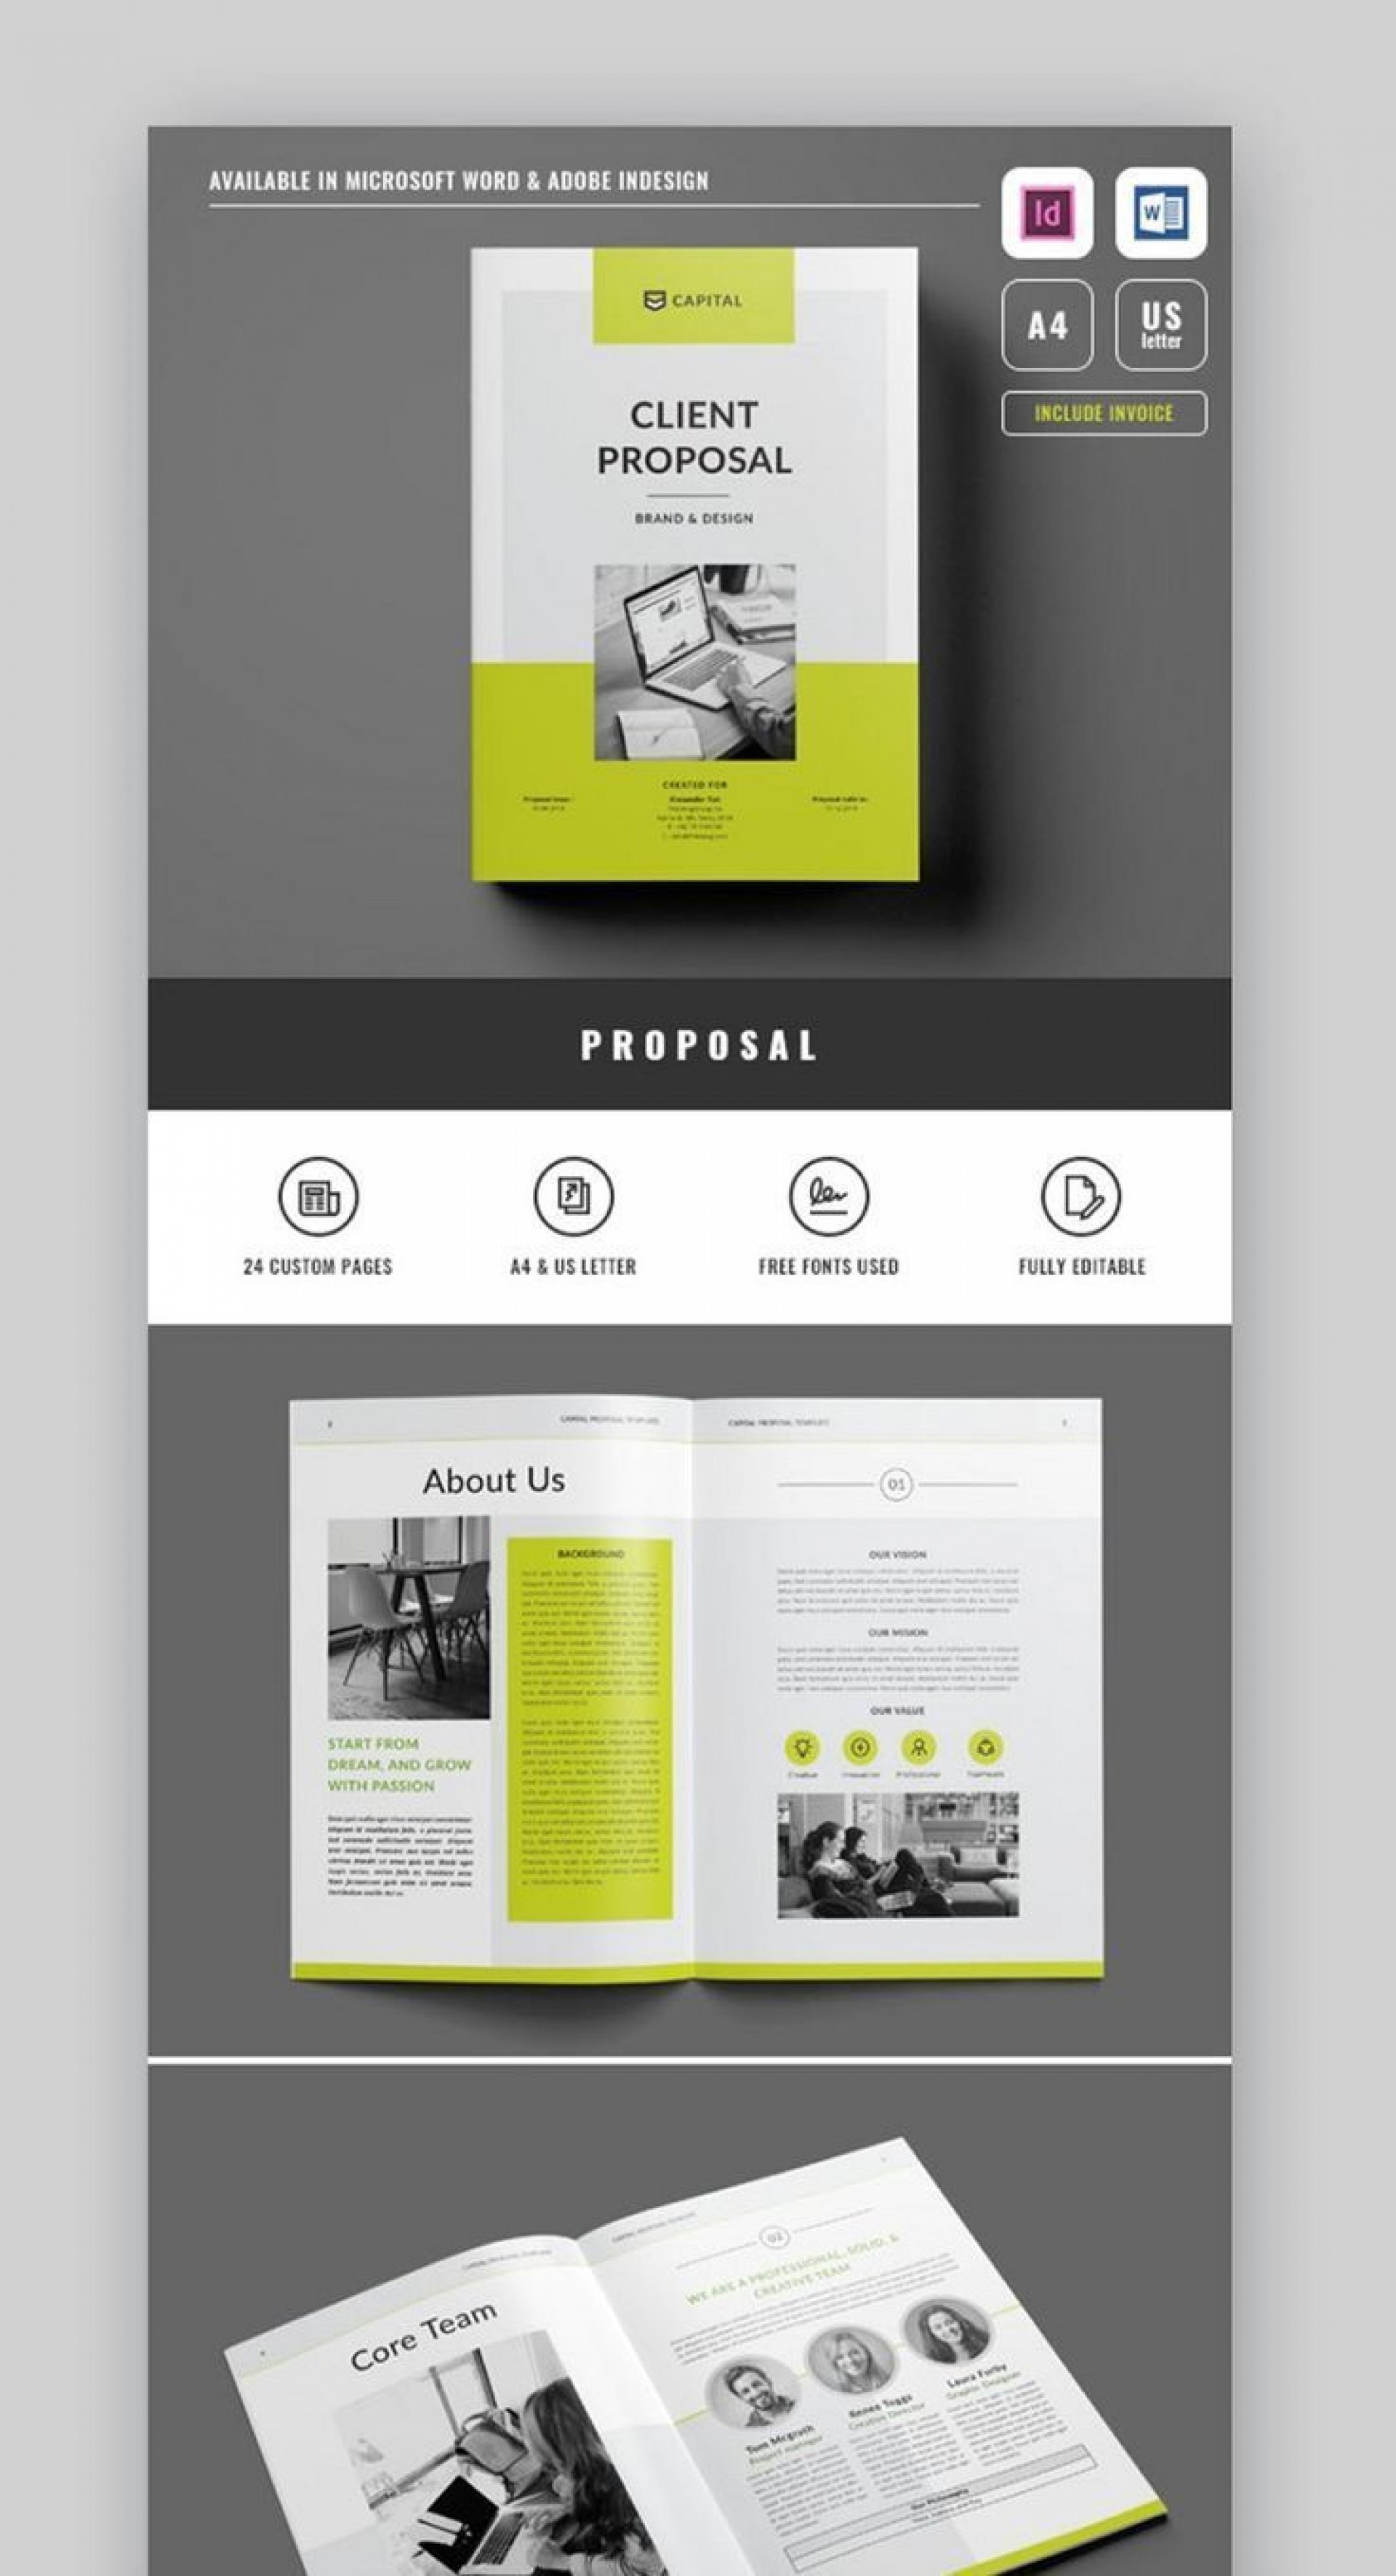 002 Imposing Free Online Brochure Template For Word Image  Microsoft1920